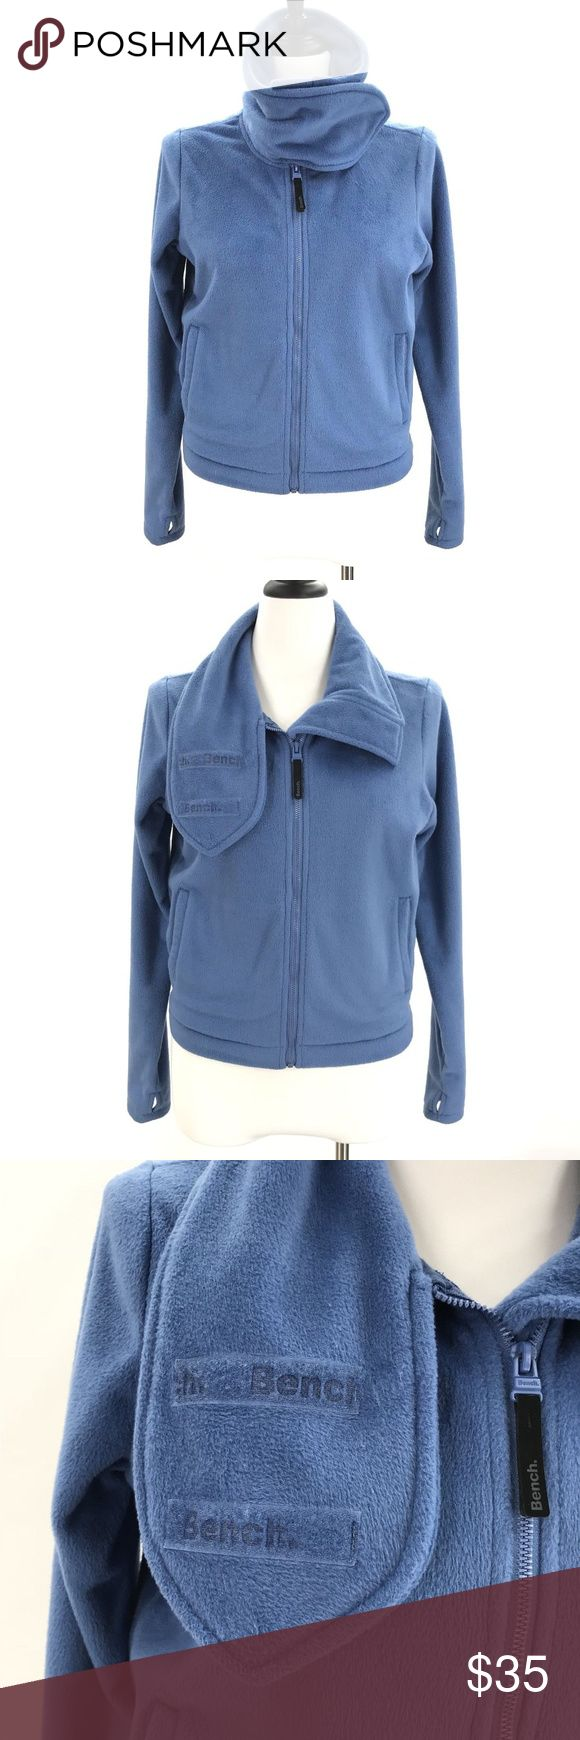 BENCH Funnel Neck Fleece Jacket Zip Up Sweatshirt BENCH Womens Size Medium Blue Funnel Neck Fleece Jacket Zip up Soft Sweatshirt  CONDITION: Very good preowned condition with normal signs of light use. No major flaws or imperfections. No stains, holes or heavy wear. May show light signs of wash and wear. All wear is typical of a gently worn preowned item. Please see all photos as a visual description of the item. Bench Jackets & Coats